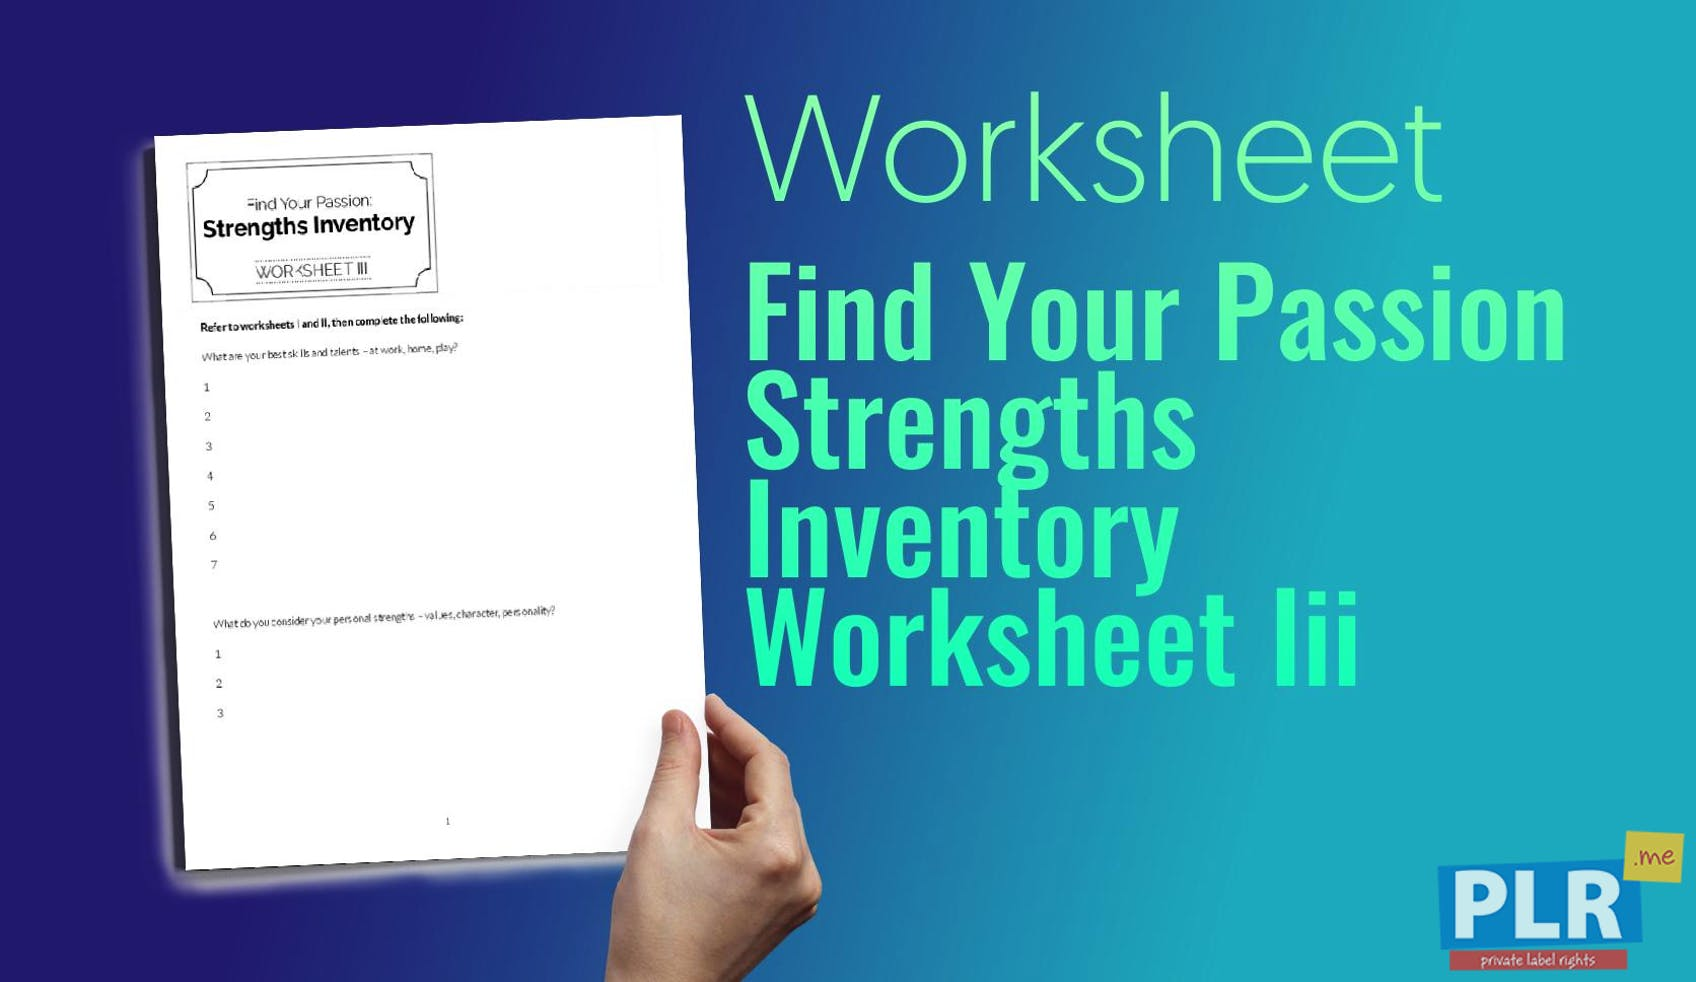 plr worksheets find your passion strengths inventory worksheet iii